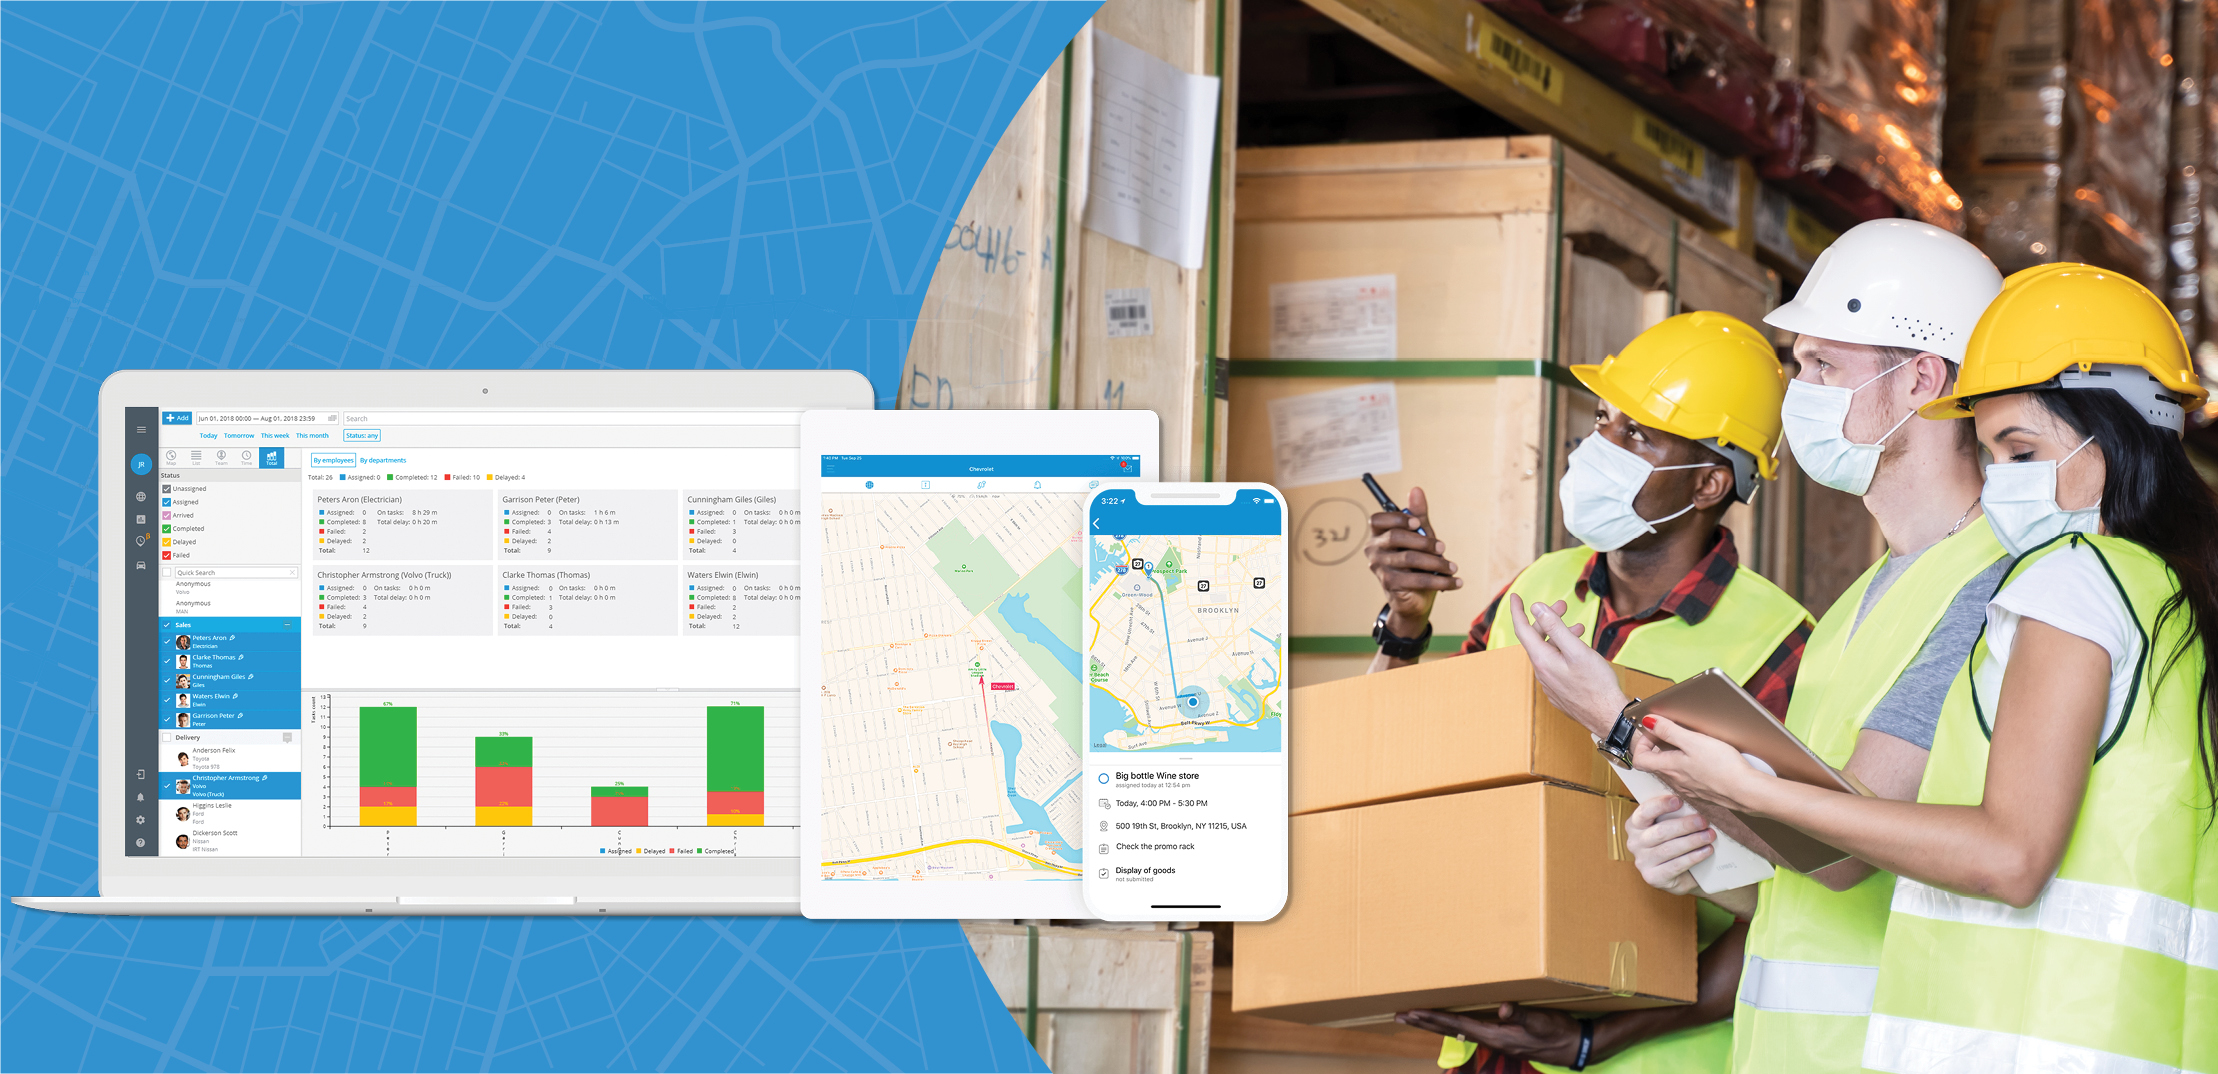 employees using field service management software